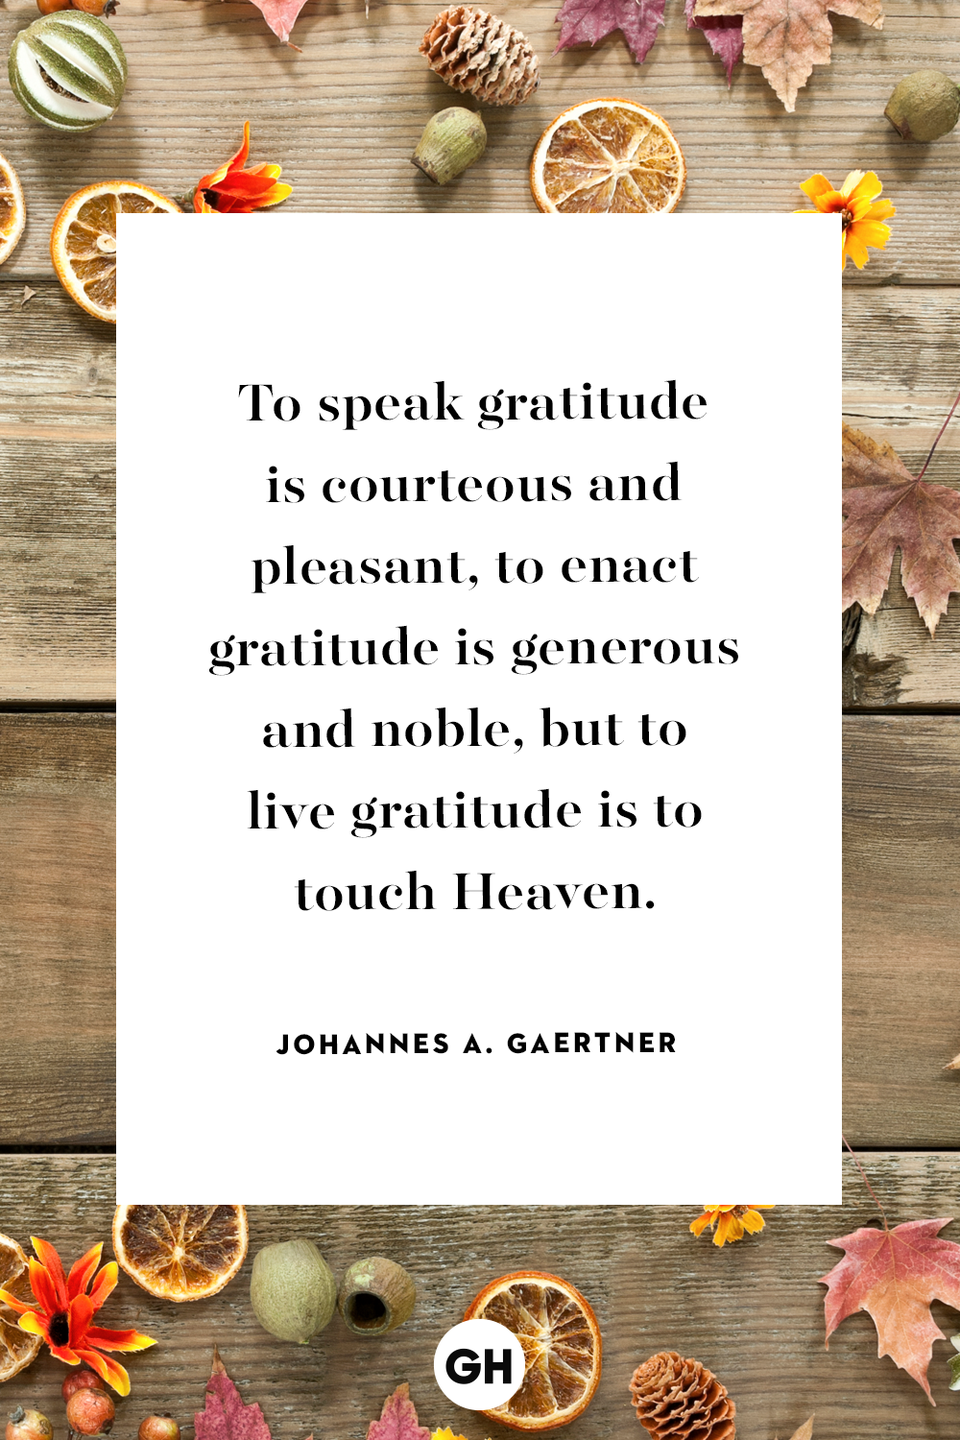 """<p>To speak gratitude is courteous and pleasant, to enact gratitude is generous and noble, but to live gratitude is to touch Heaven.</p><p><strong>RELATED: </strong><a href=""""https://www.goodhousekeeping.com/holidays/thanksgiving-ideas/a24488581/thanksgiving-instagram-captions/"""" rel=""""nofollow noopener"""" target=""""_blank"""" data-ylk=""""slk:50 Creative Instagram Captions for Thanksgiving"""" class=""""link rapid-noclick-resp"""">50 Creative Instagram Captions for Thanksgiving</a></p>"""